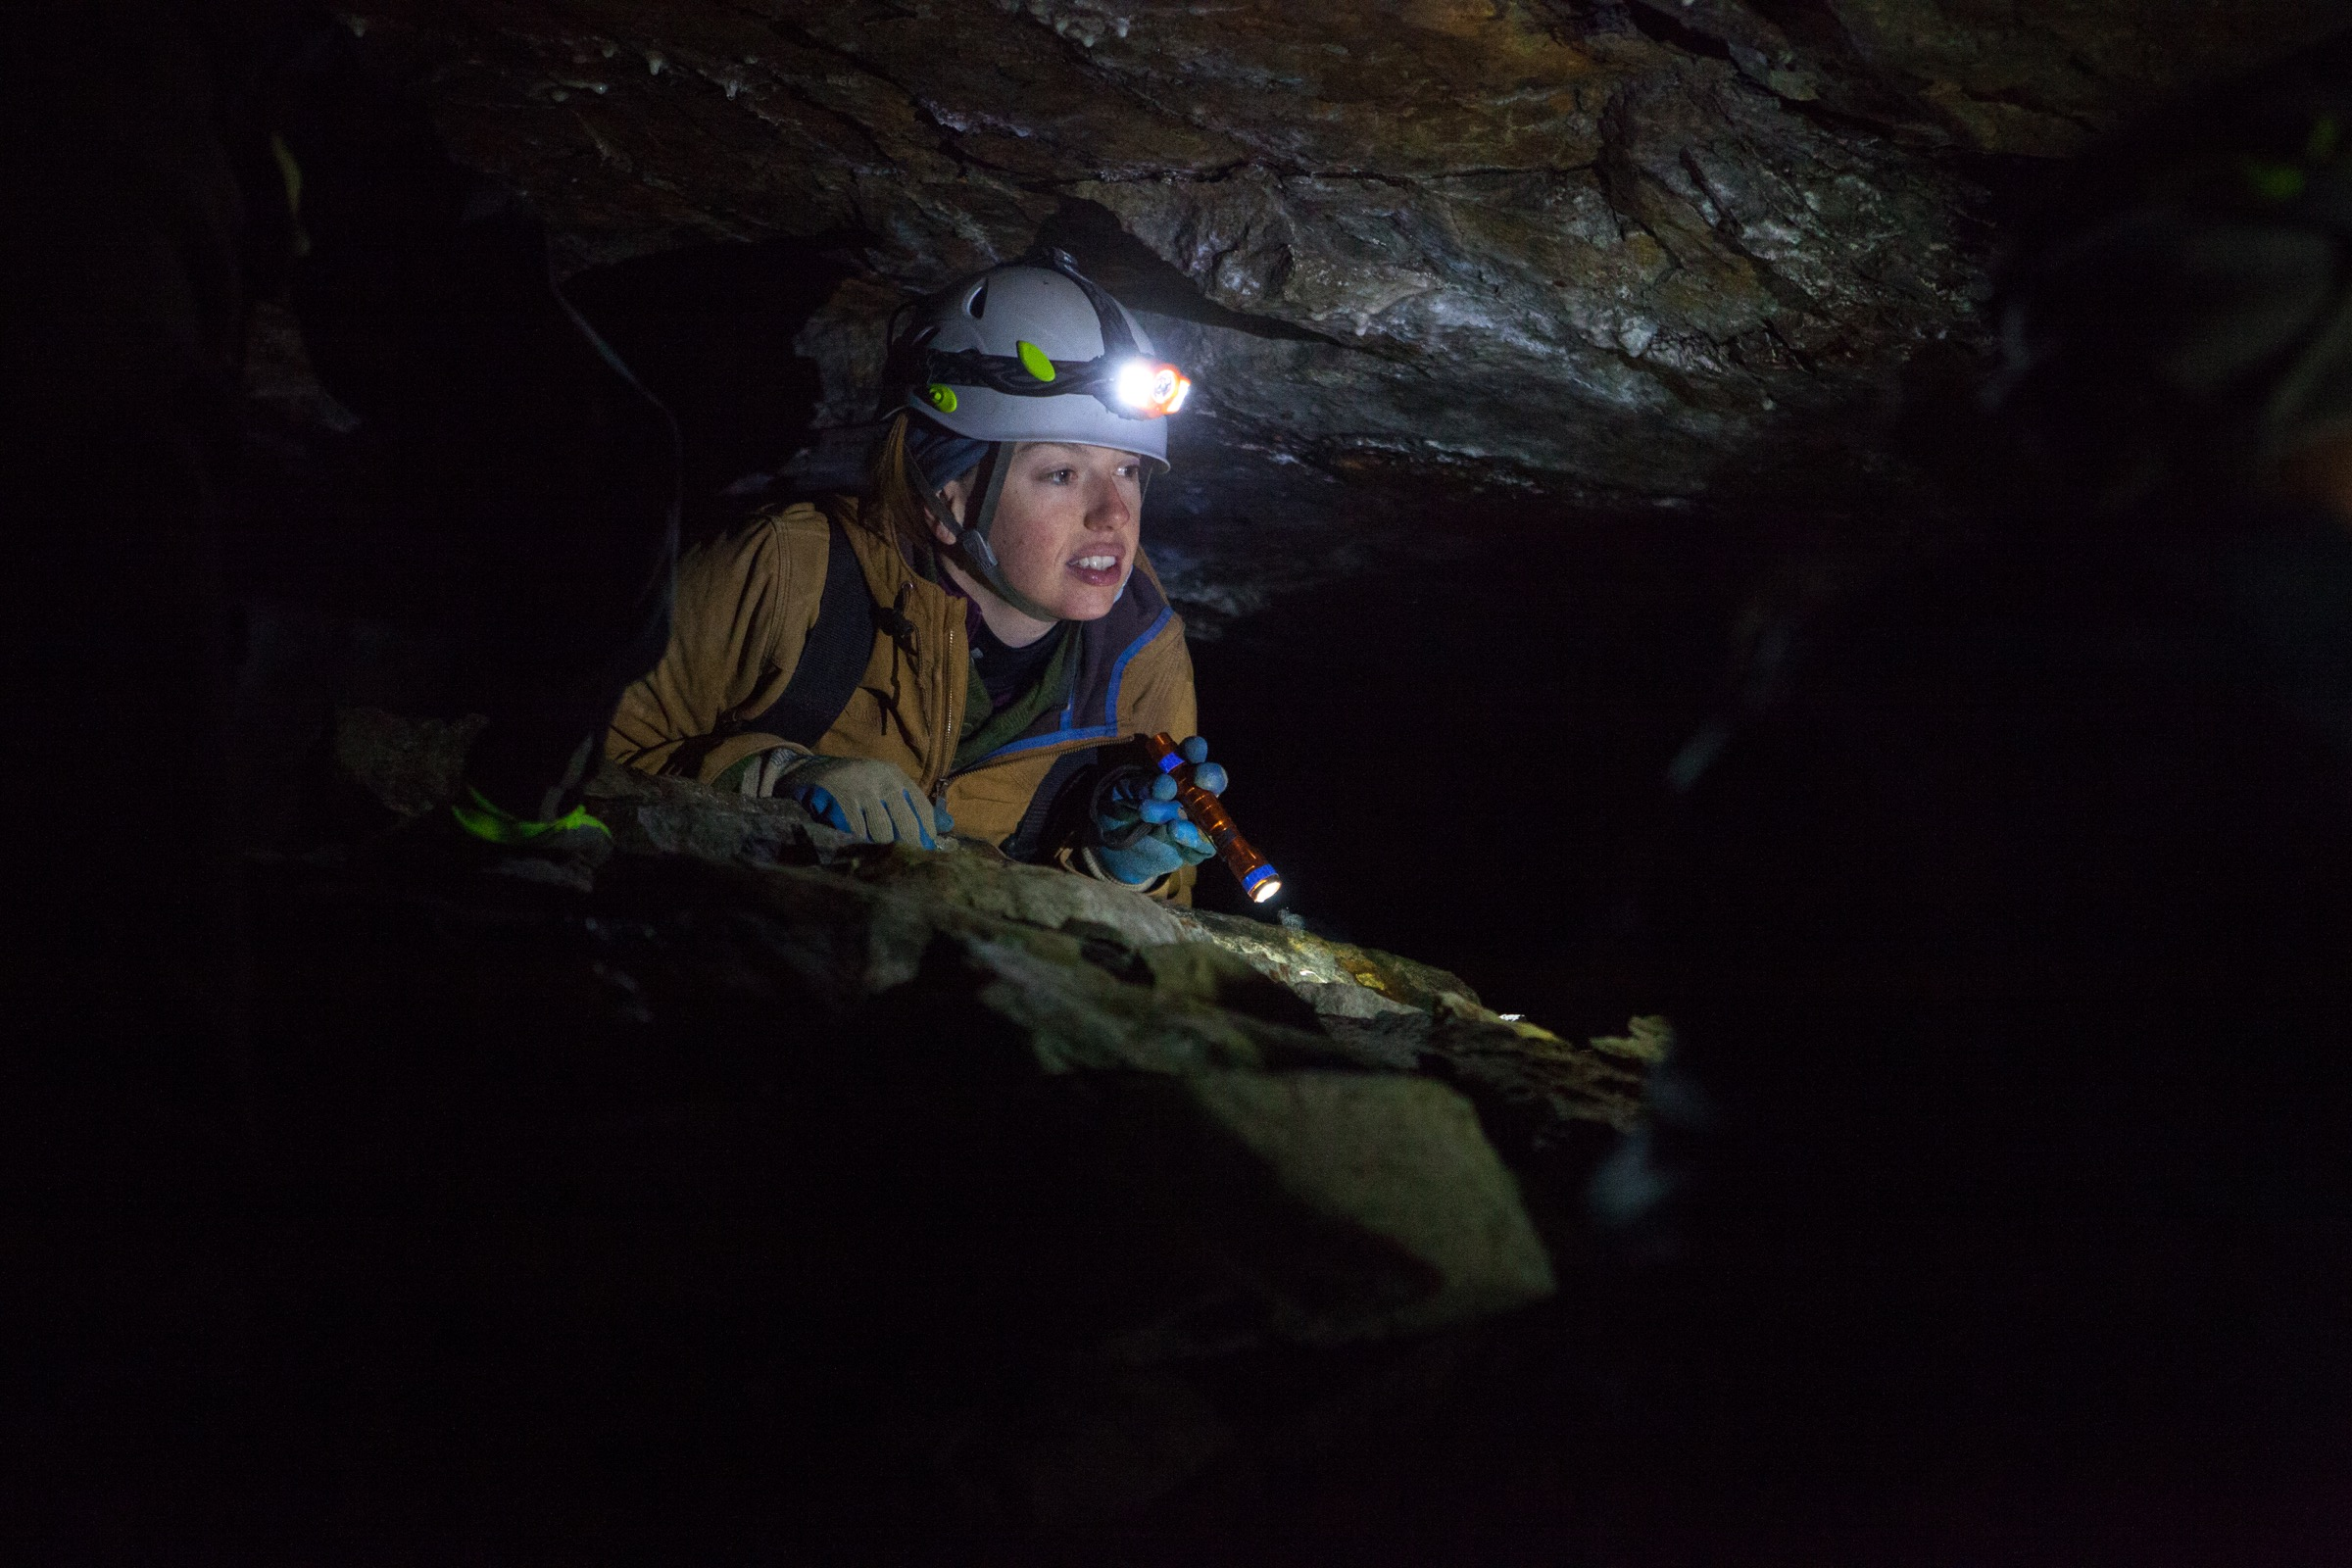 Mandy Bailey of the New York State Department of Environmental Conservation peers into a crevice during a survey in Upstate New York. Photograph by Geoffrey Giller